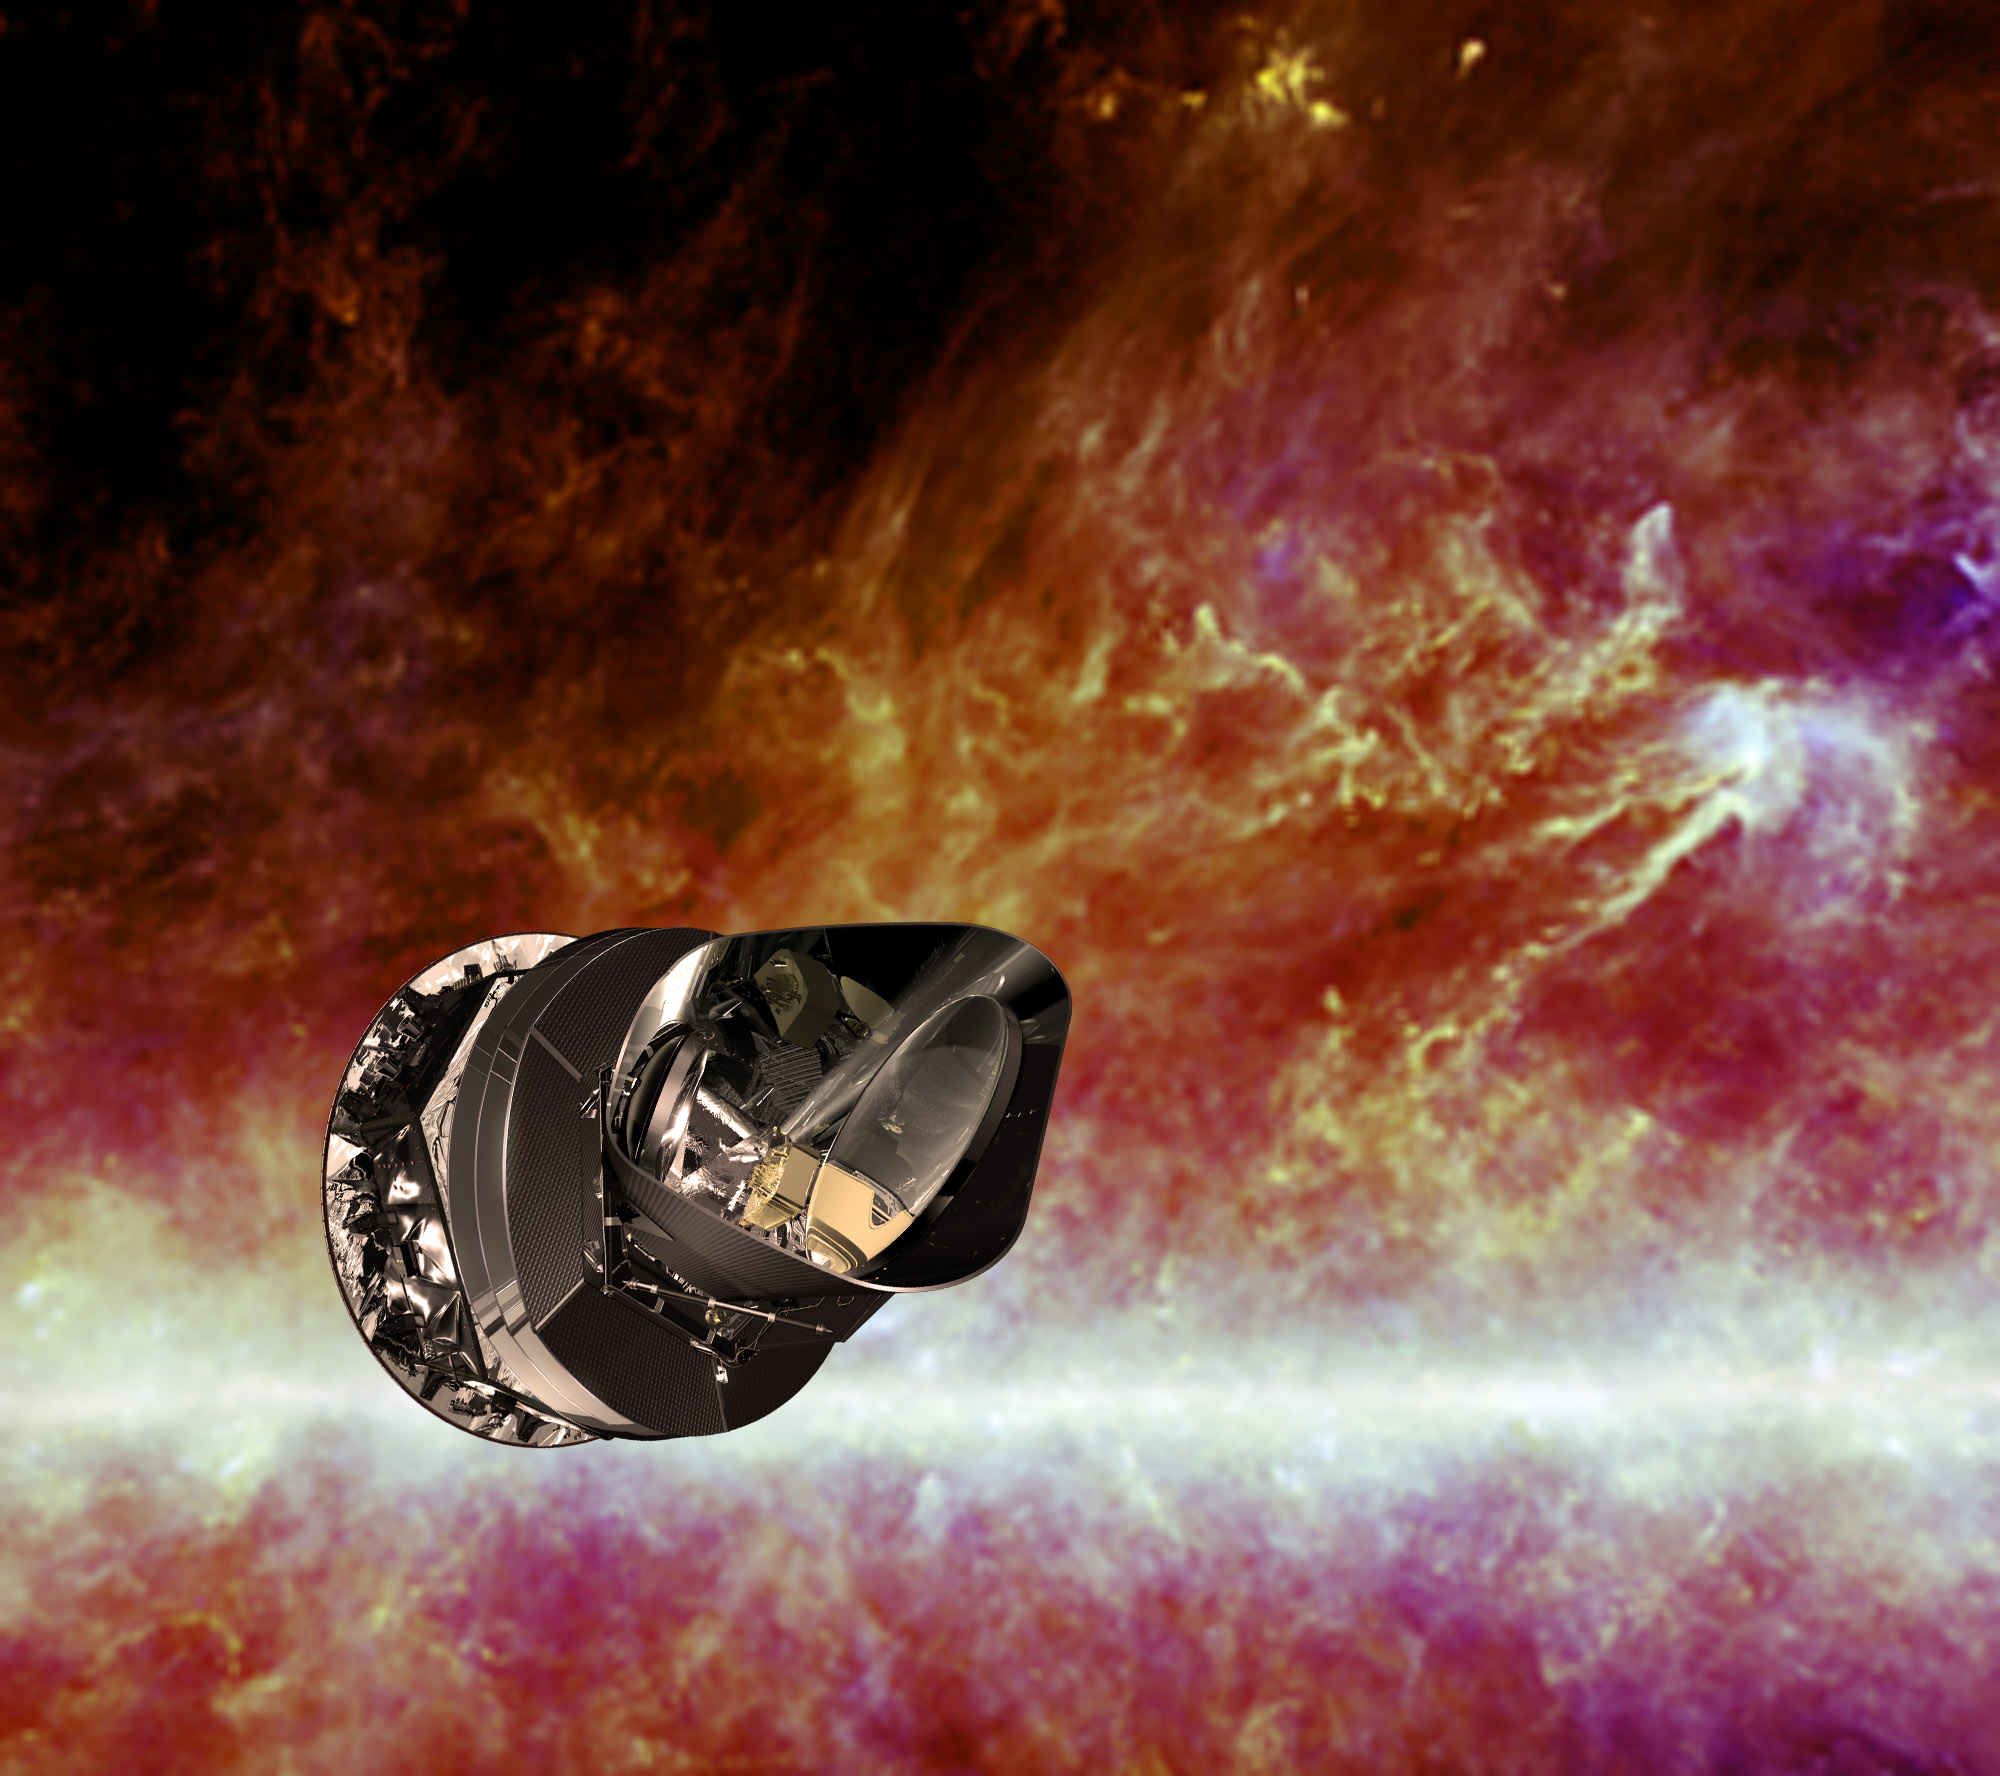 Aeroplans - Artist impression of the Planck spacecraft © ESA